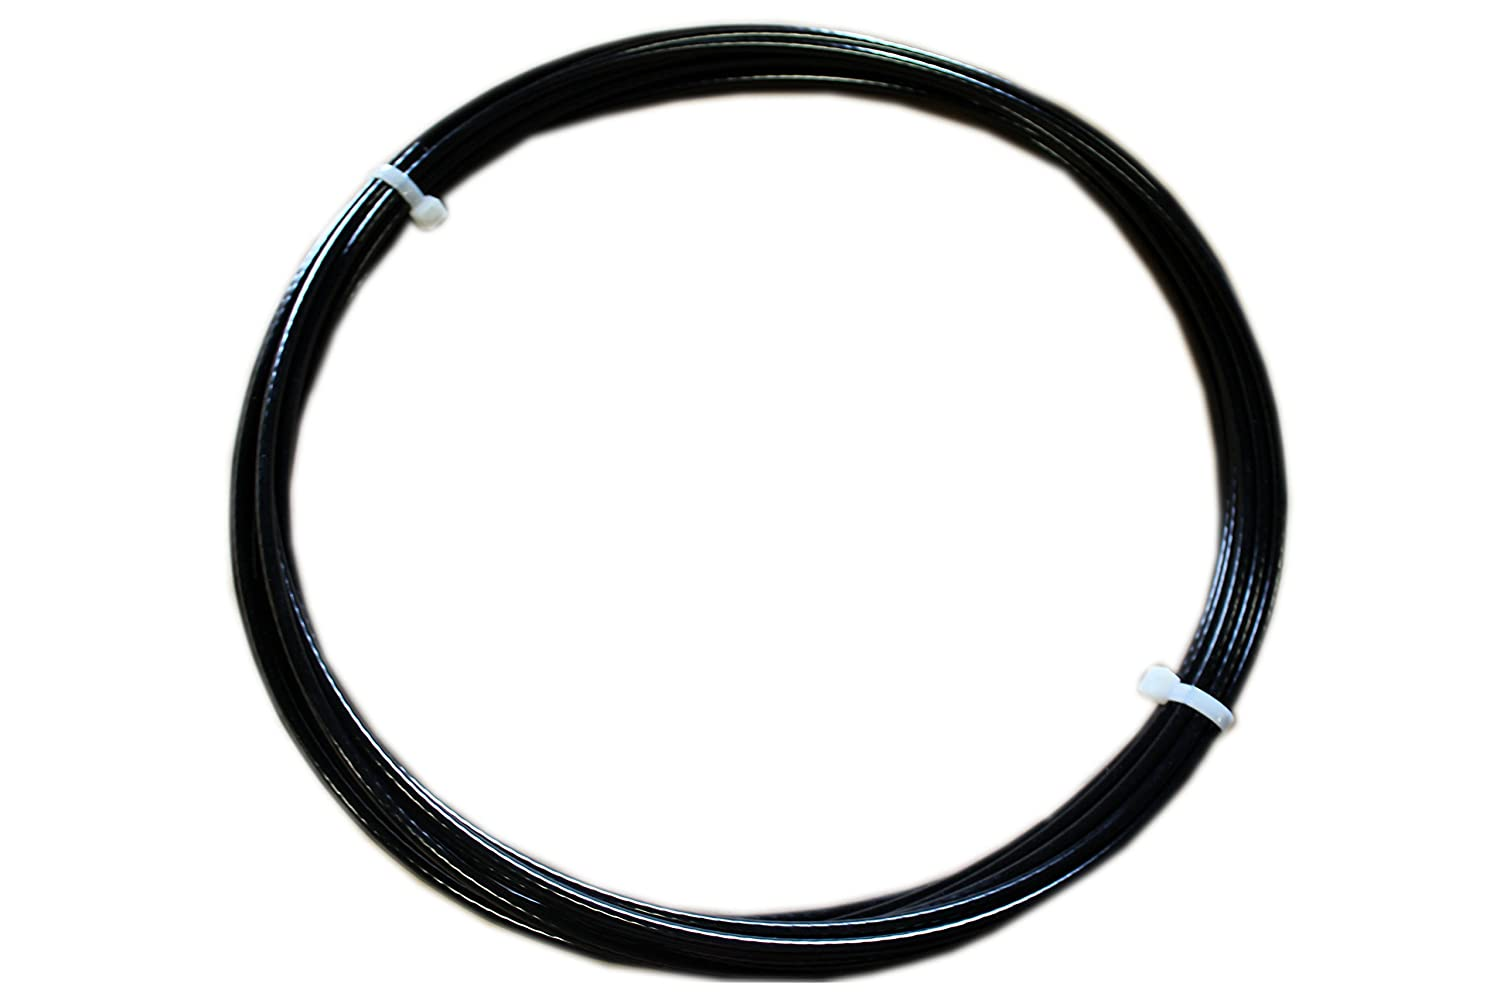 7x19 Strand Core Vinyl Coated 50 Length Loos Stainless Steel 302//304 Wire Rope Black 3700 lbs Breaking Strength 3//16 Bare OD 1//4 Coated OD